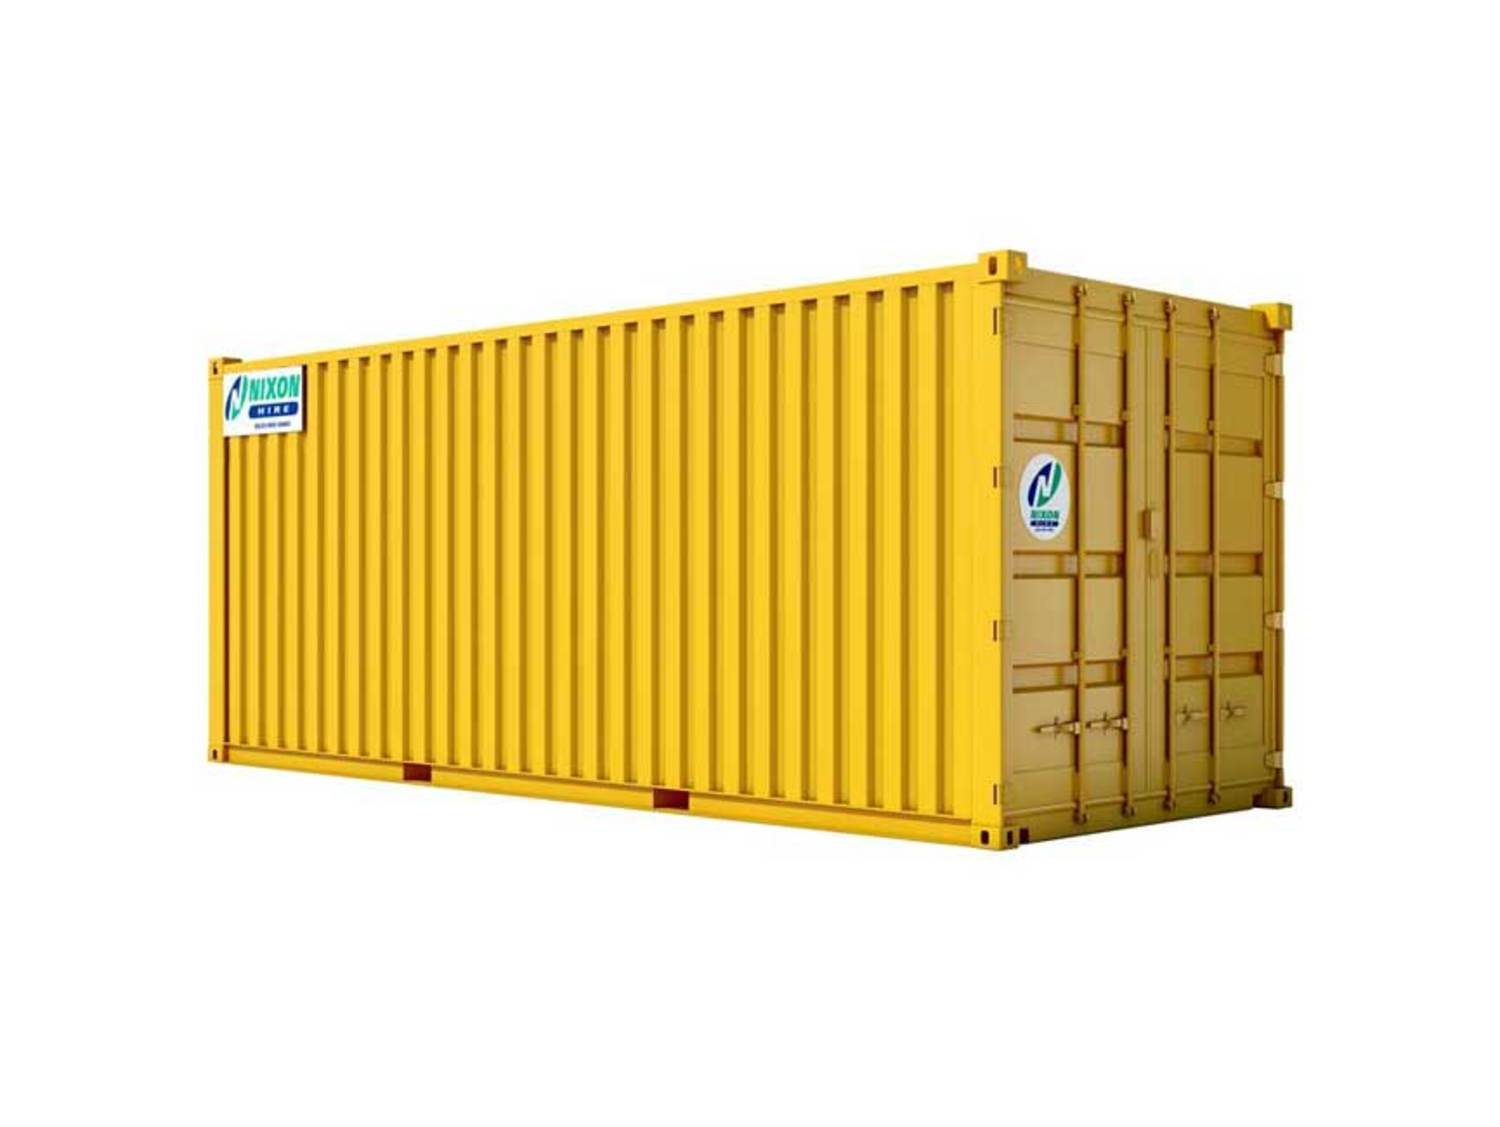 20 Foot High Security Shipping Container - Painted Yellow With Nixon Hire Logo Cut Out